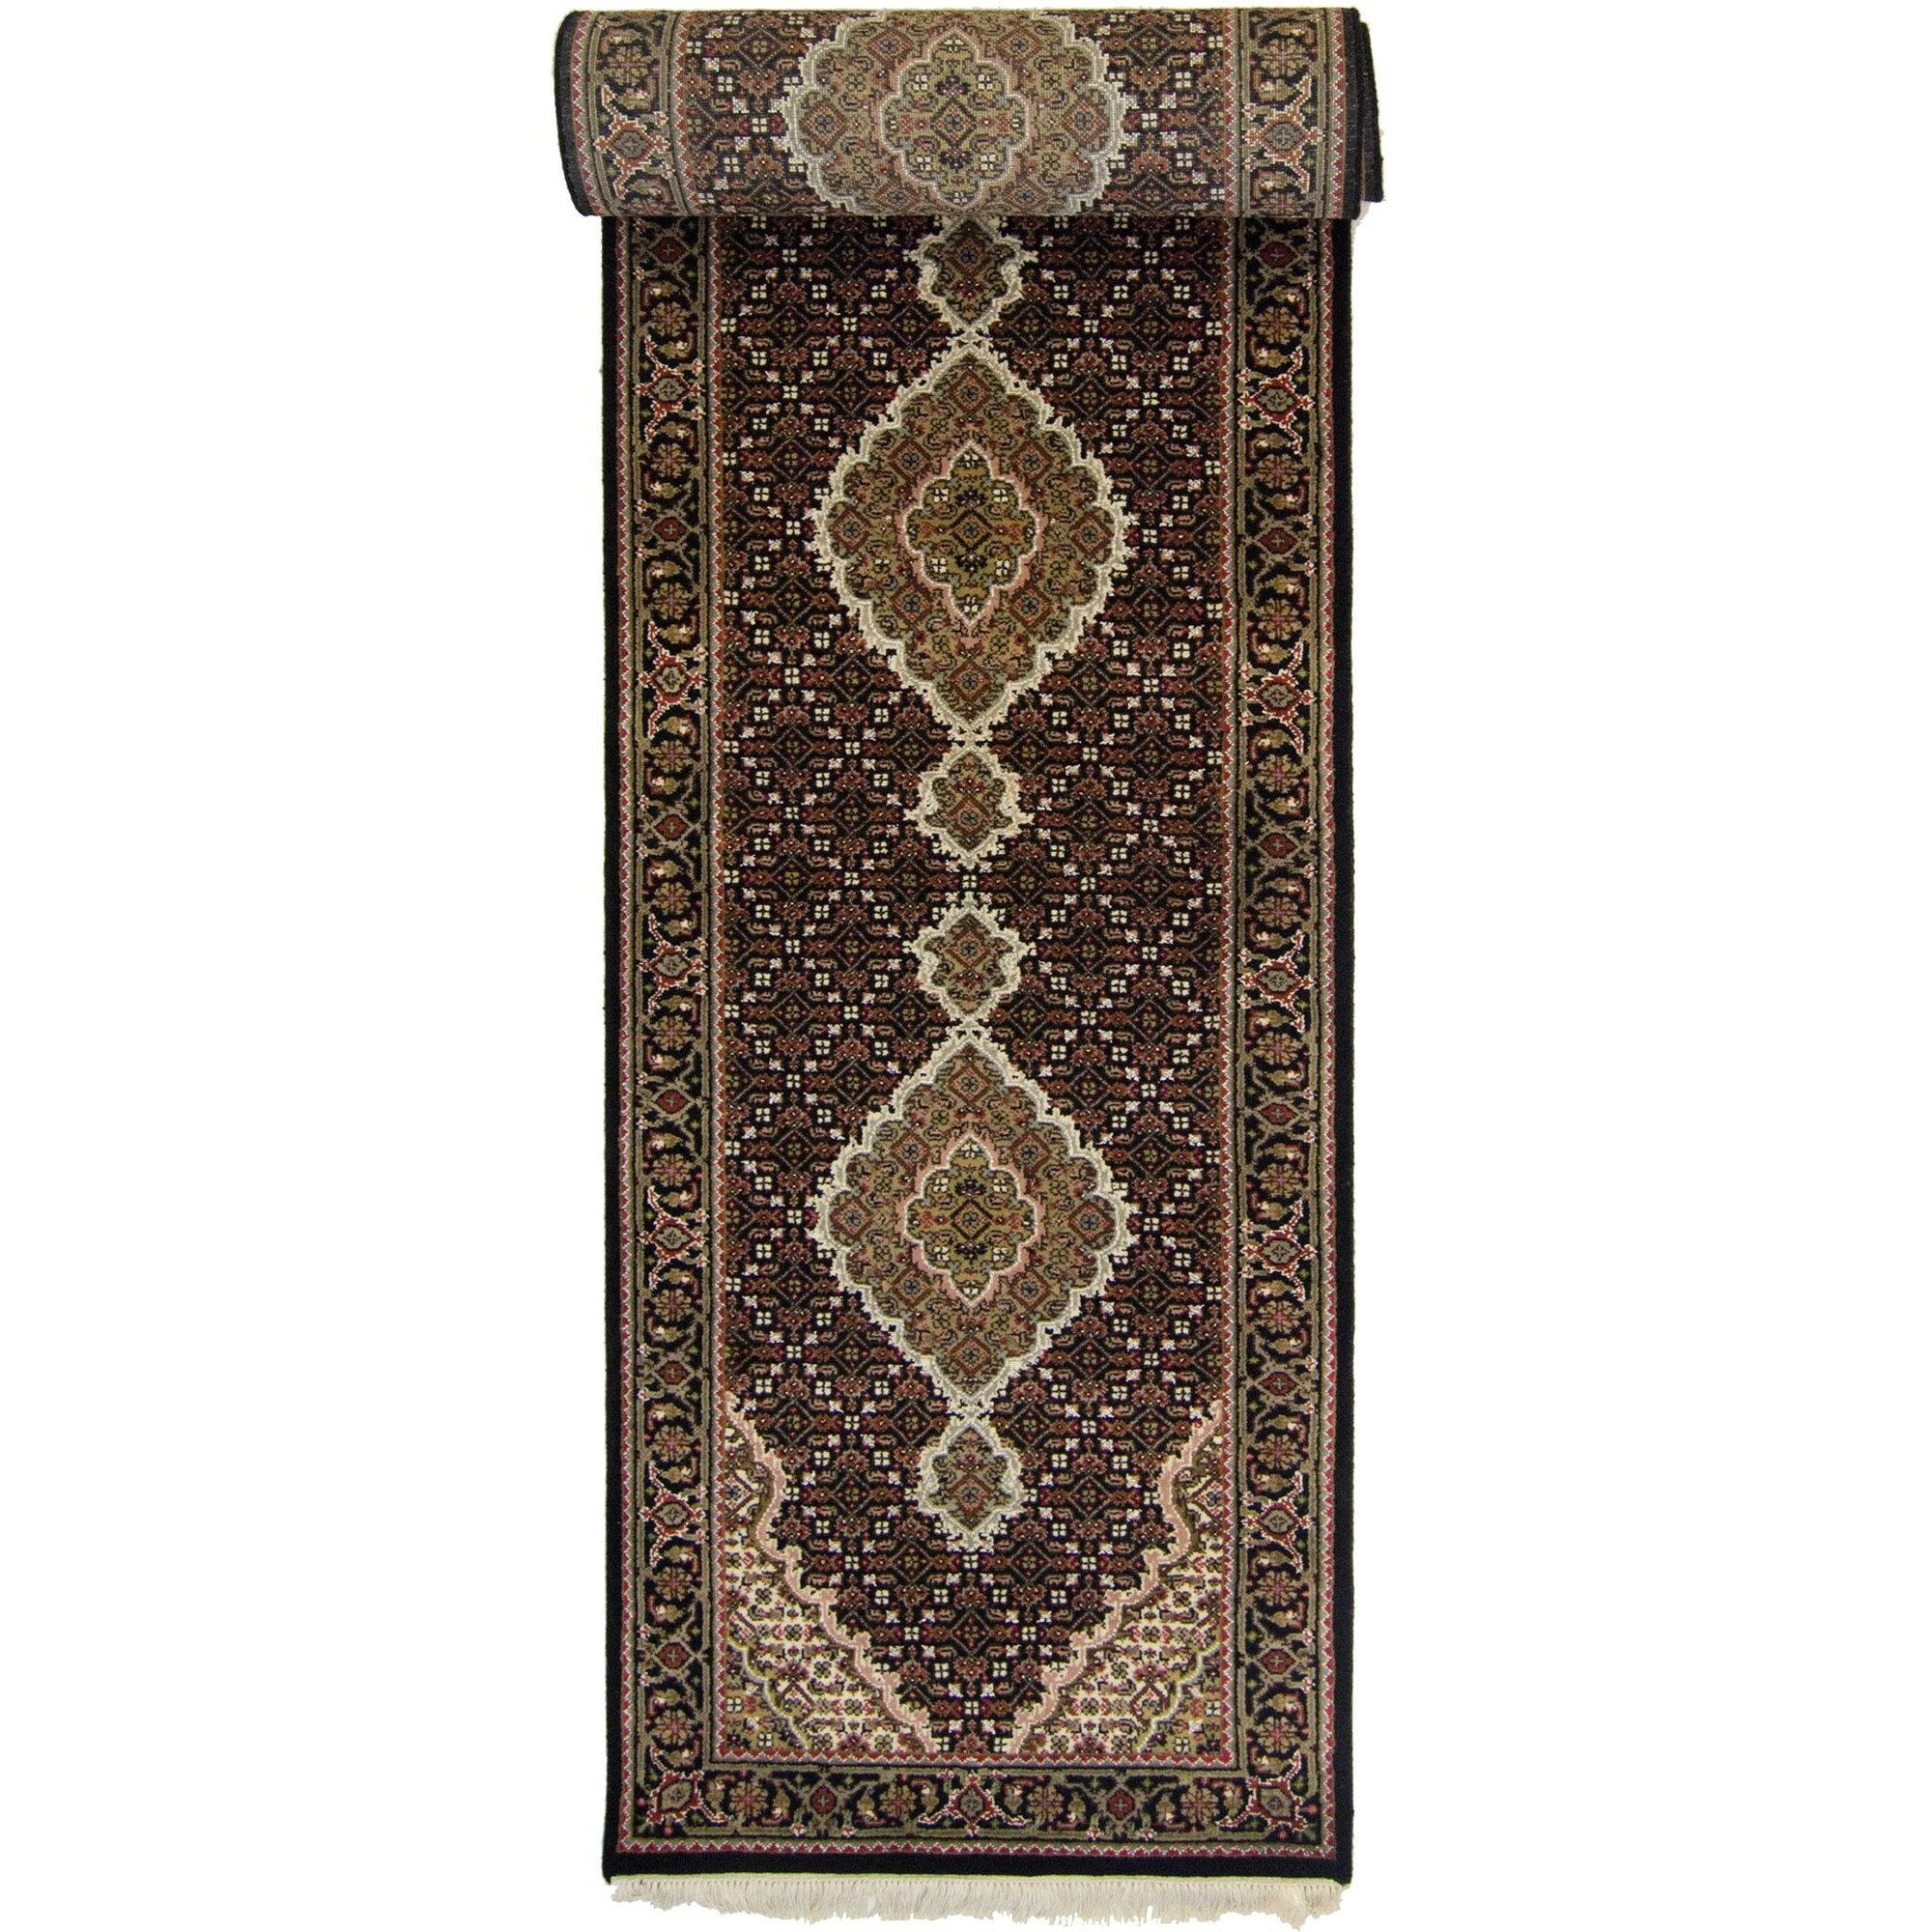 Super Fine Hand-knotted Wool and Silk Tabriz - Mahi Runner 85 cm x 308 cm Persian-Rug | House-of-Haghi | NewMarket | Auckland | NZ | Handmade Persian Rugs | Hand Knotted Persian Rugs